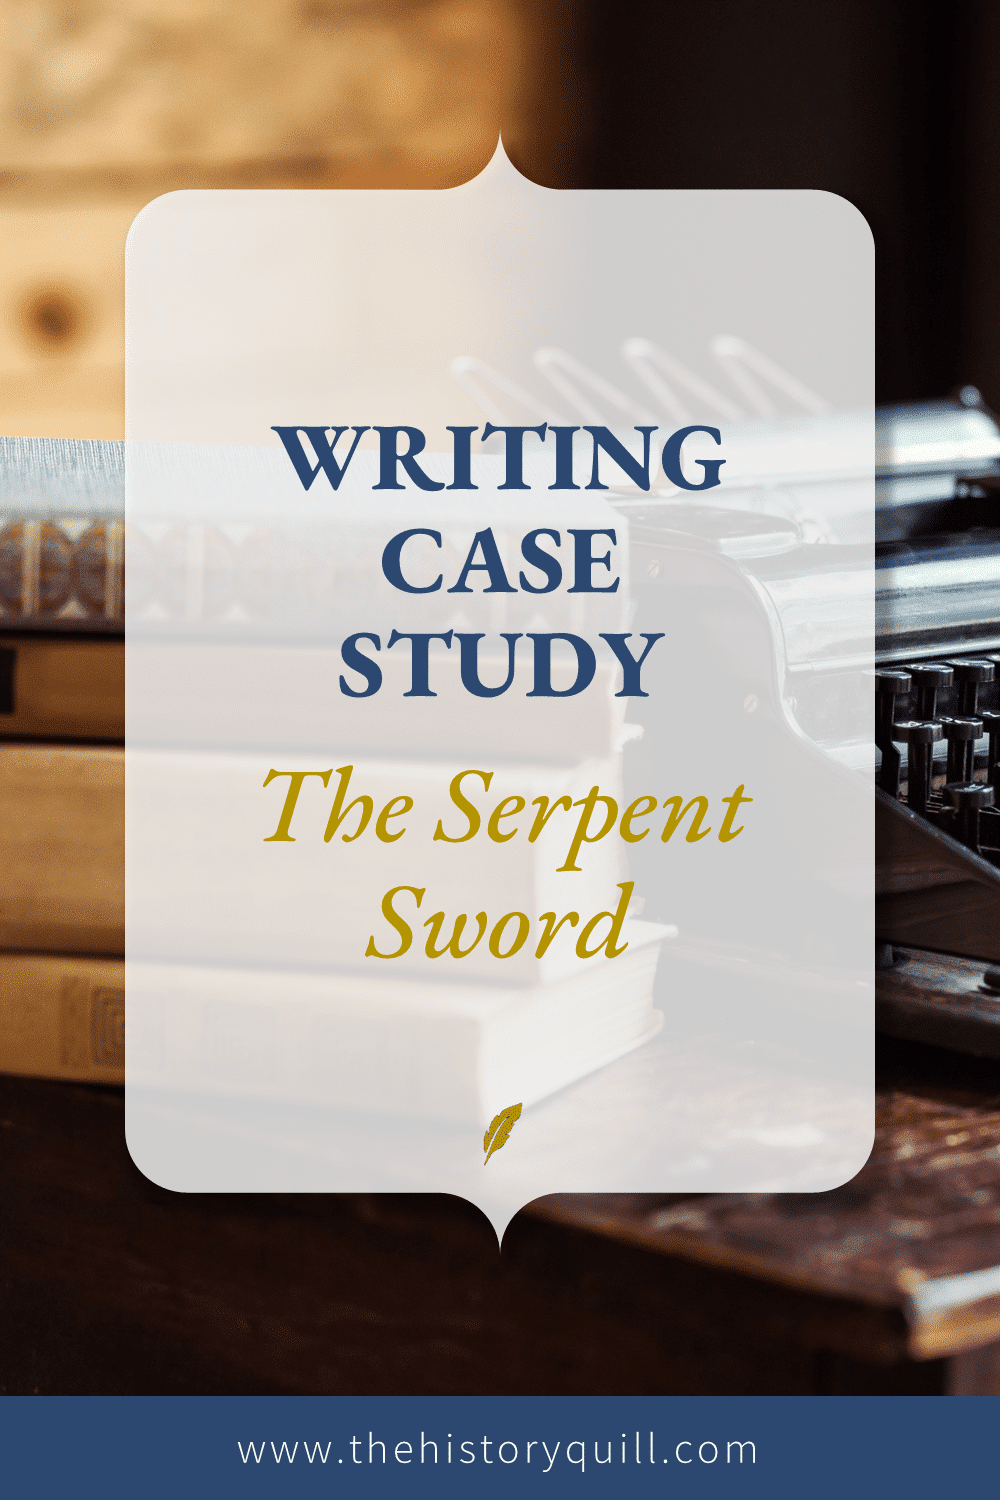 From The History Quill blog, a historical fiction case study for The Serpent Sword.